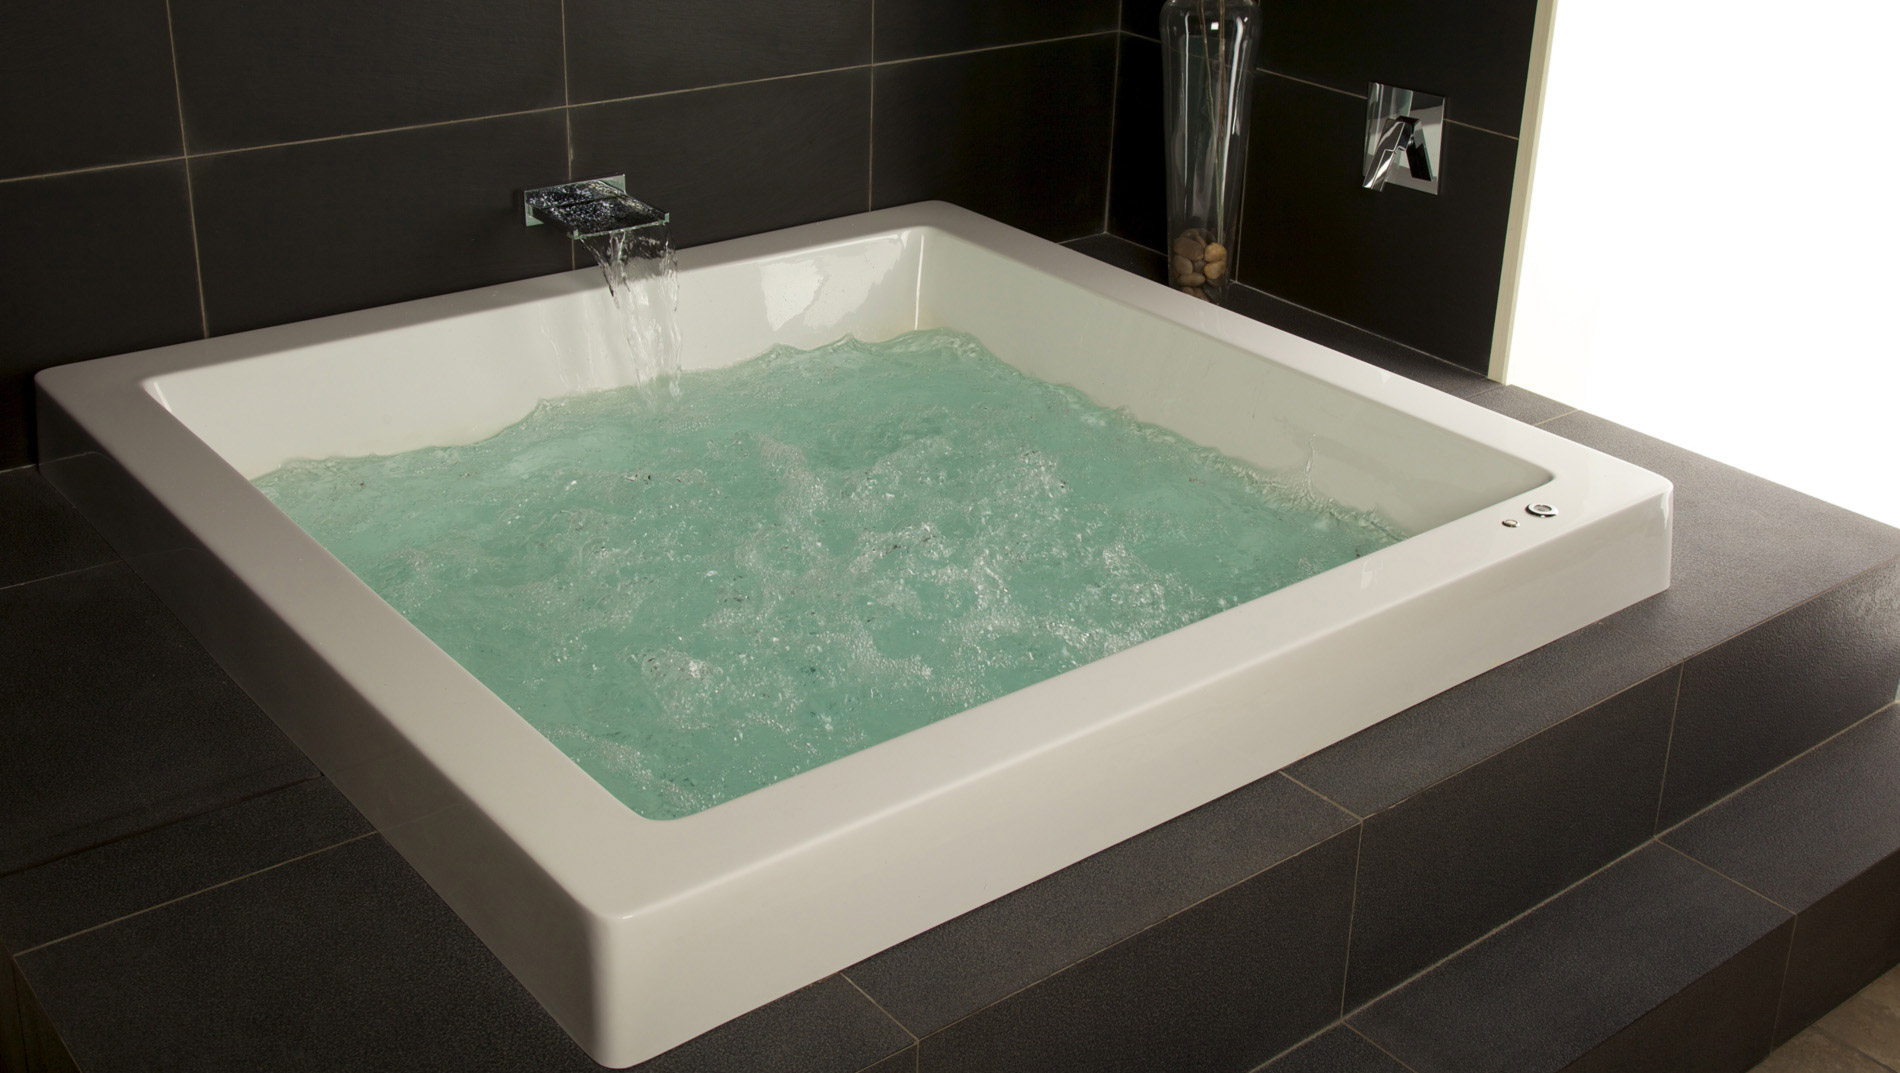 Famous spa for tub crest custom bathtubs for Whirlpool baths pros and cons